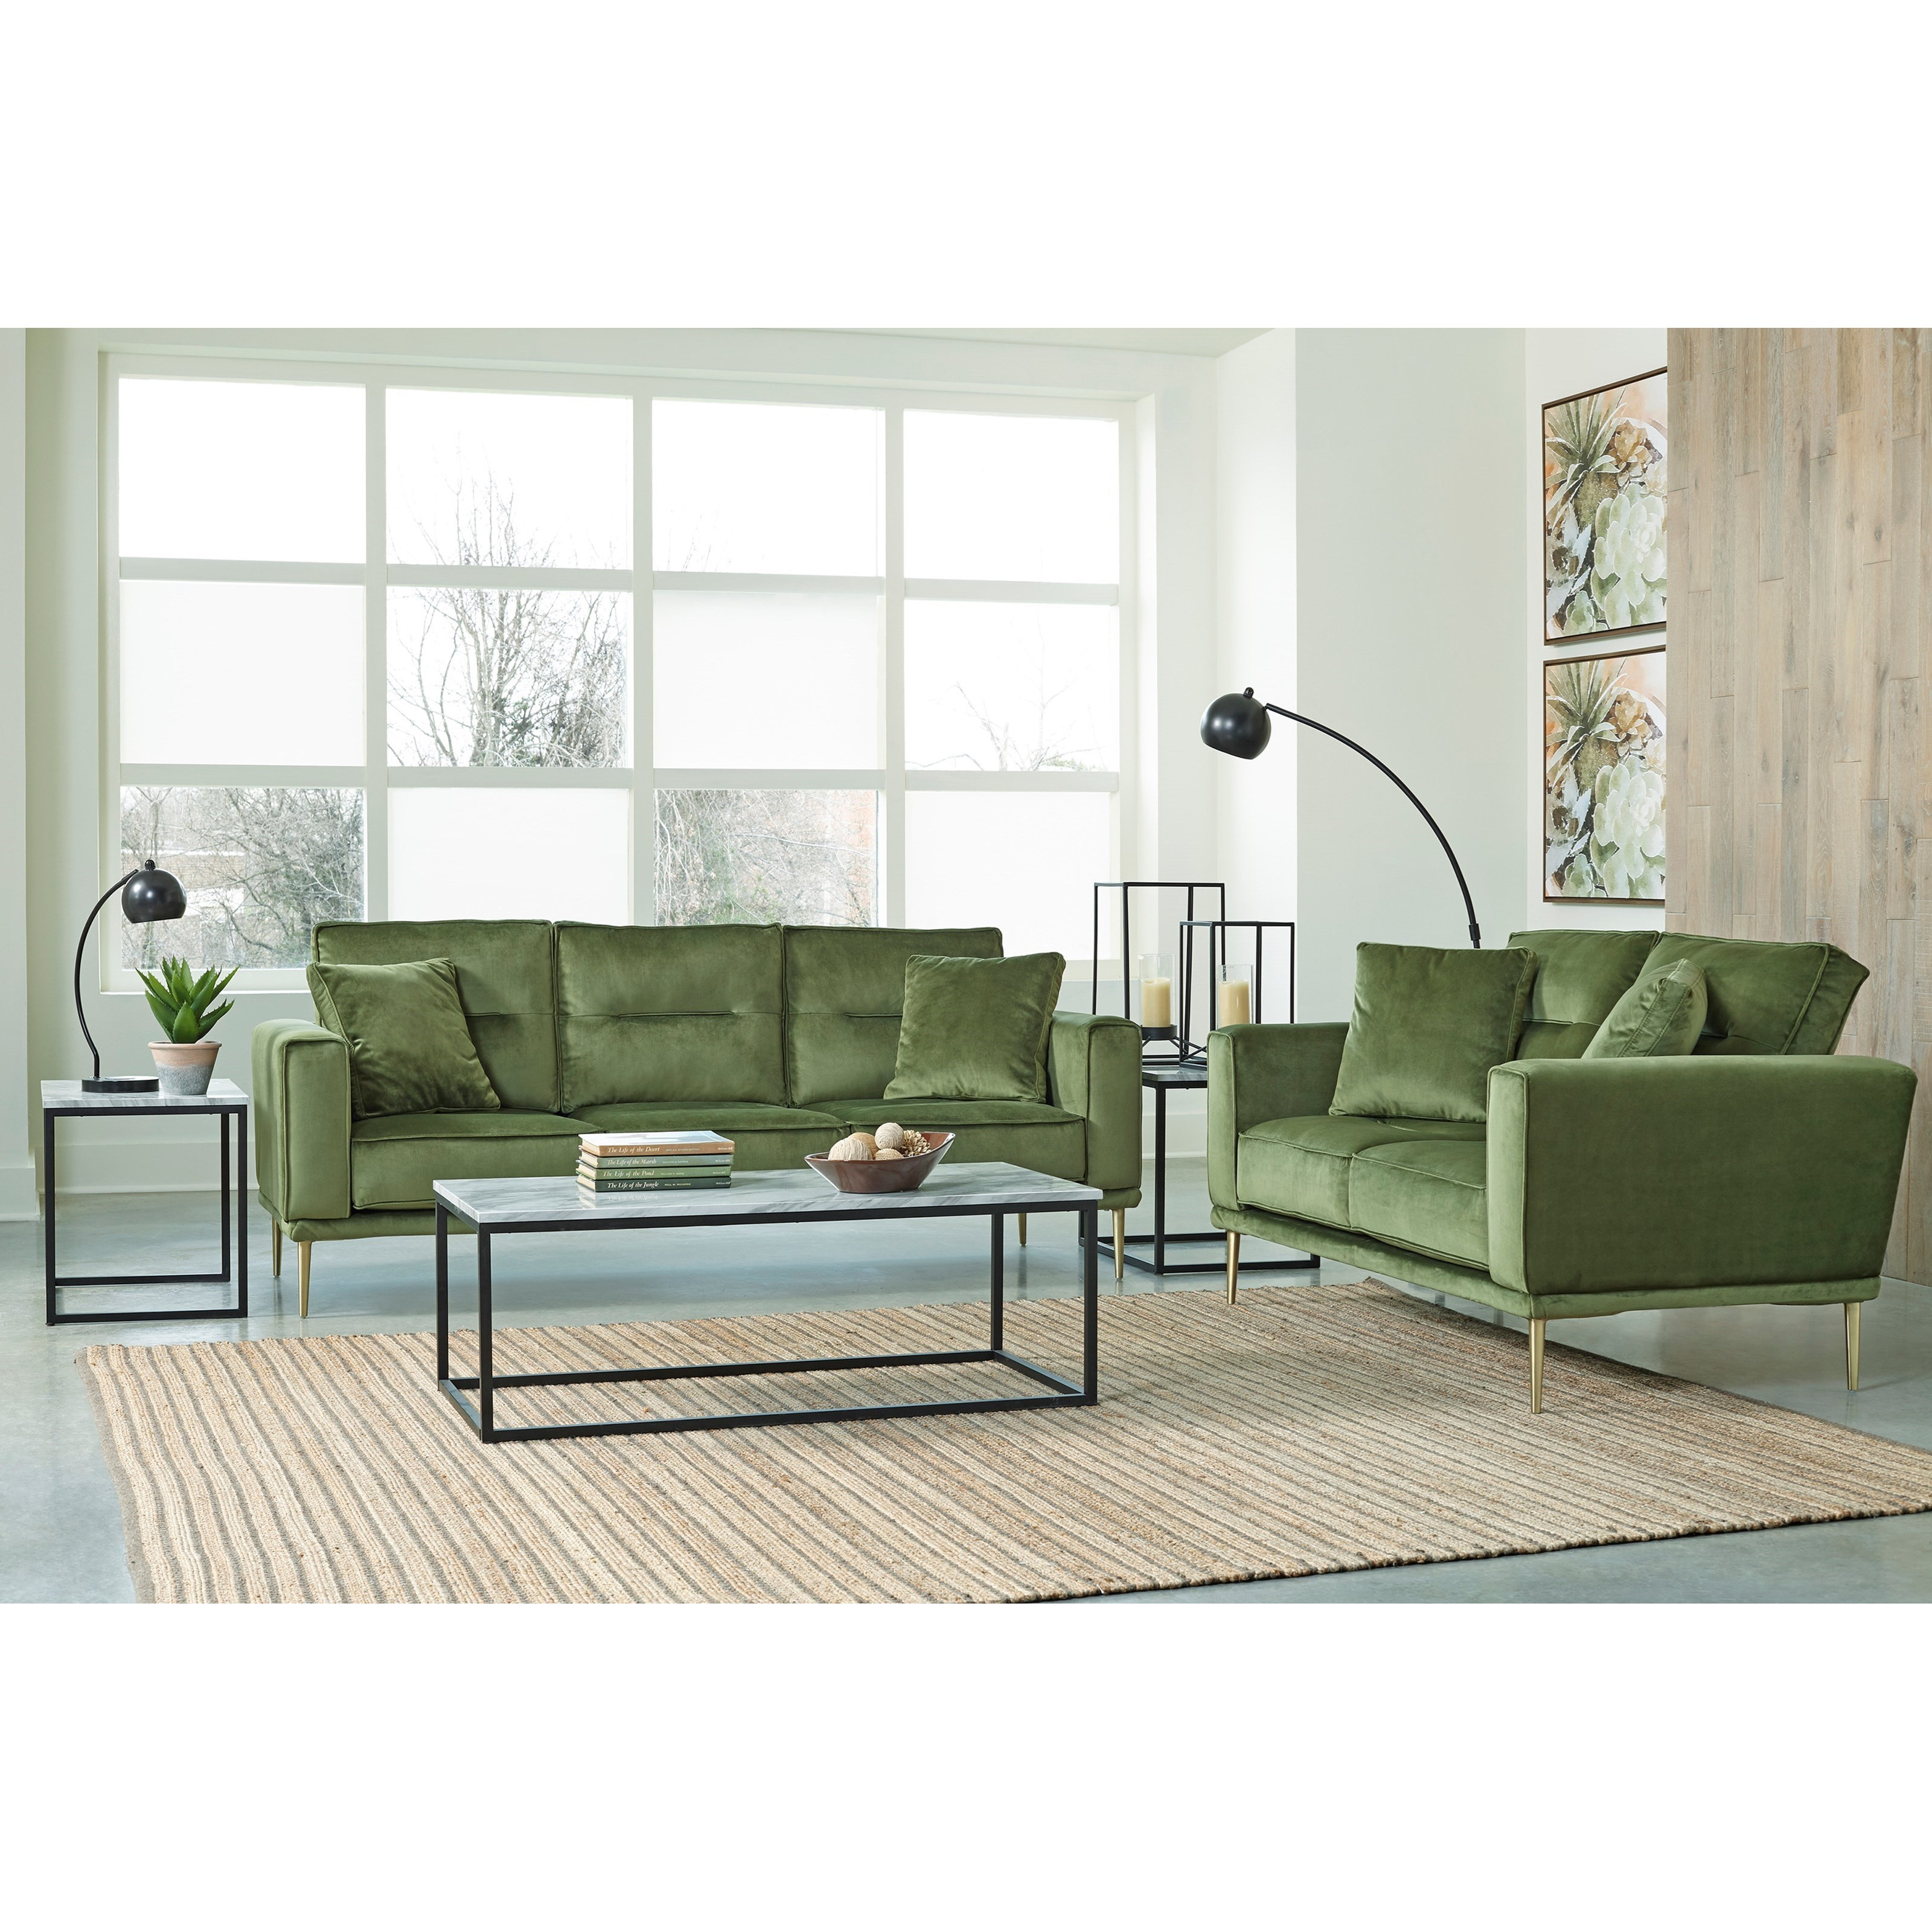 Macleary Living Room Group by Signature Design by Ashley at Zak's Warehouse Clearance Center